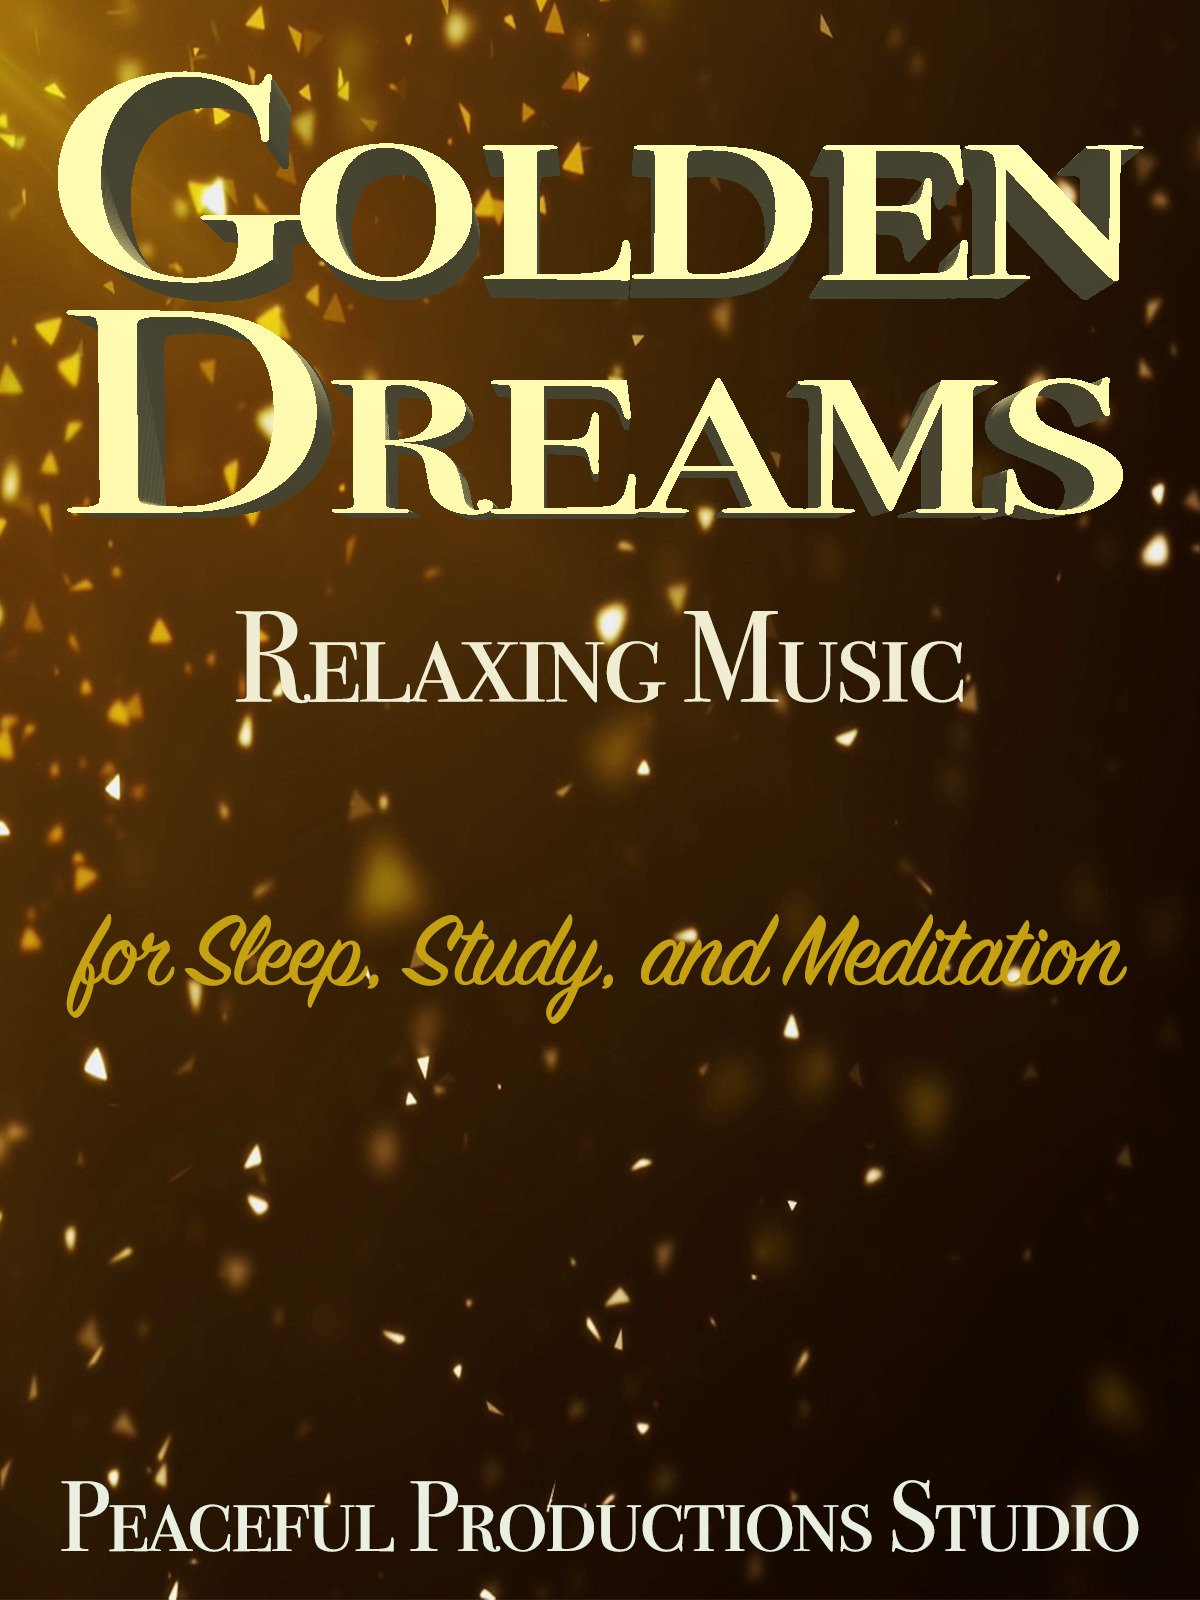 Golden Dreams